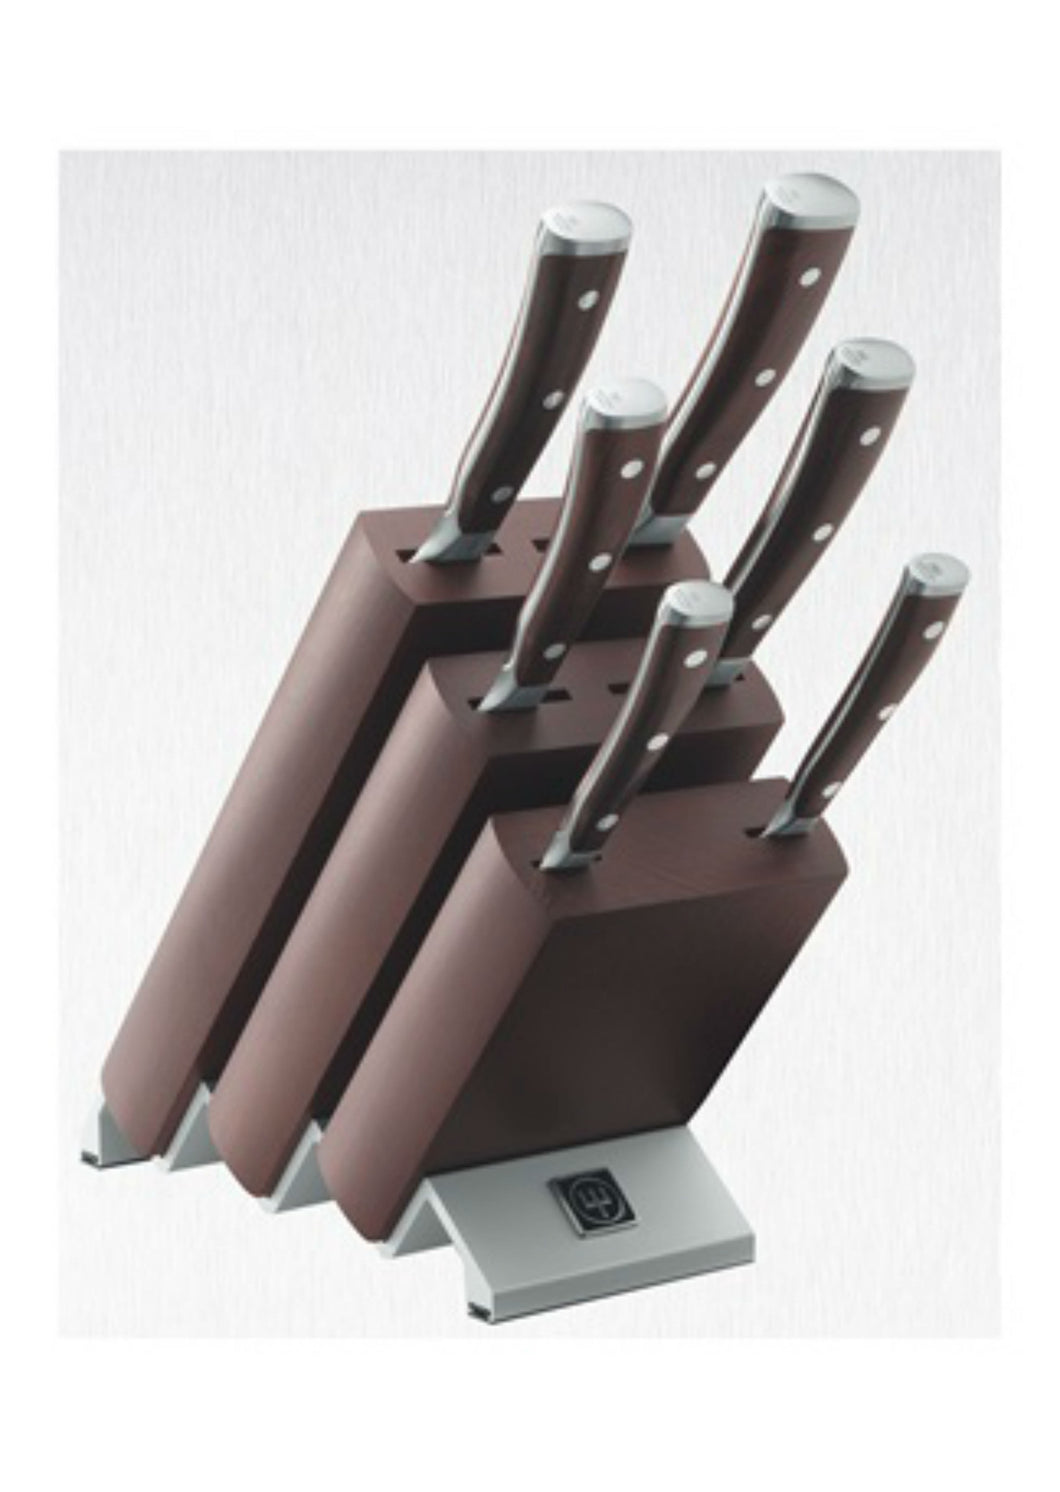 Wüsthof Ikon Chocolat 6 Piece Knife Block Set